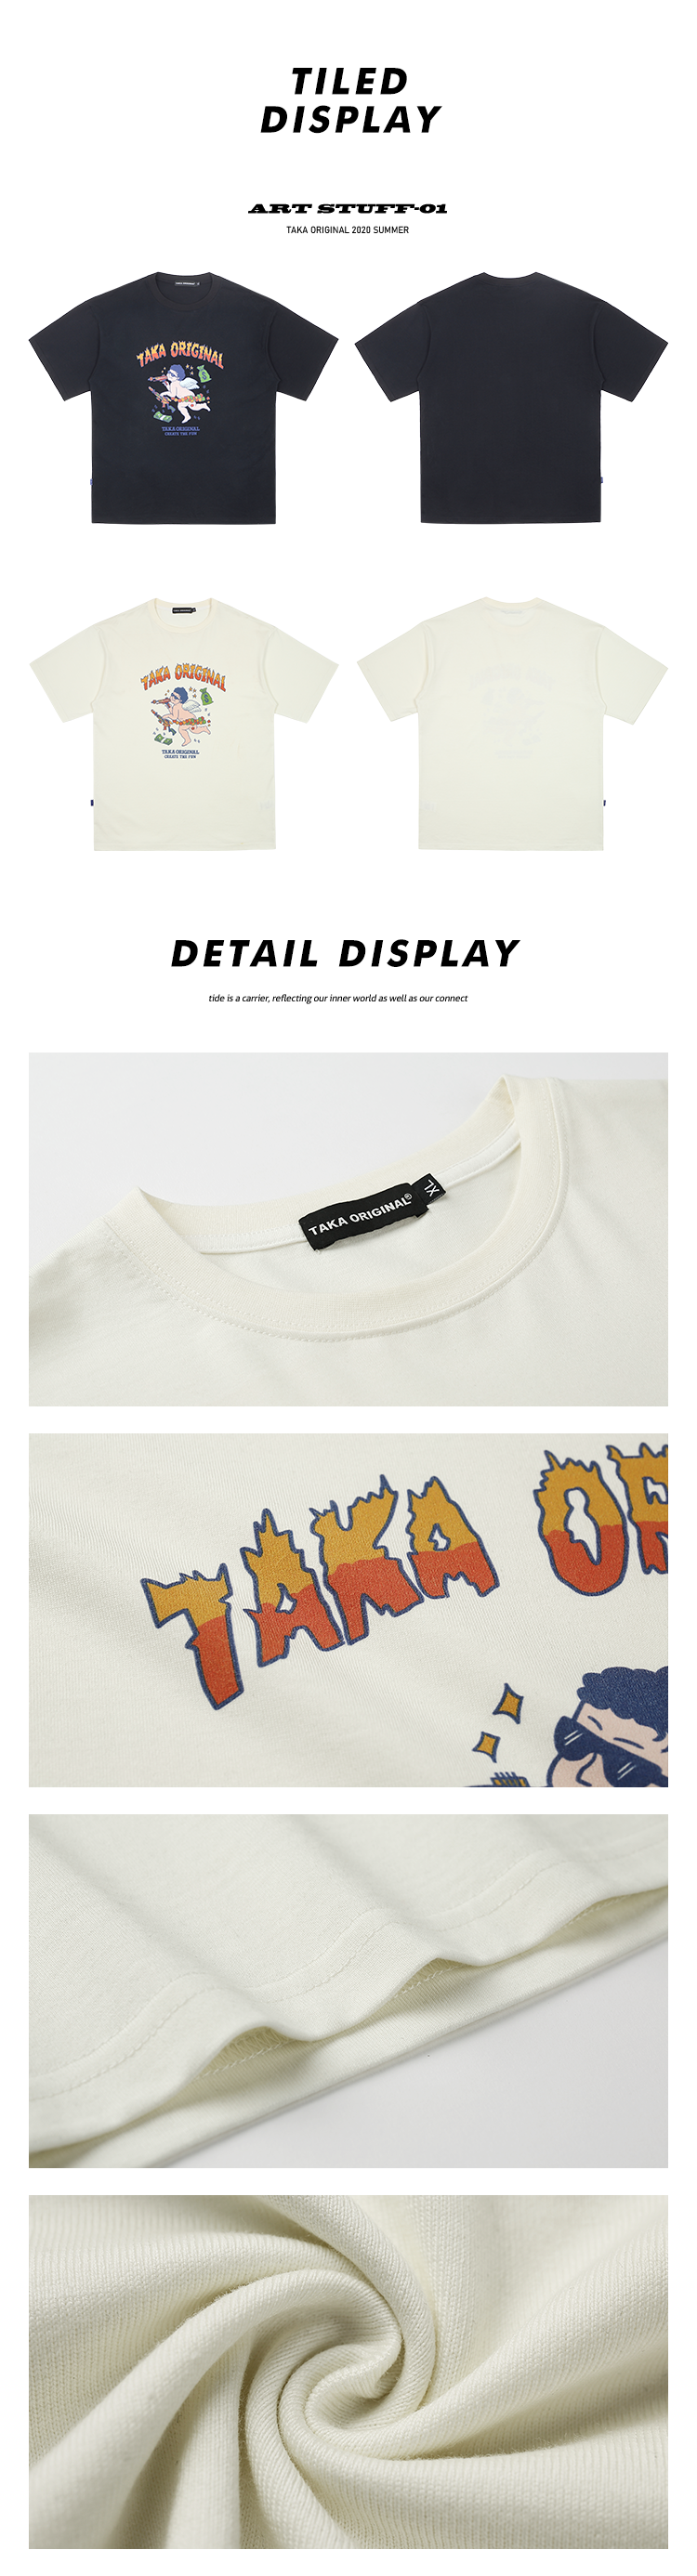 Buy New short sleeves t-shirts for teen boys and girls at Taka Original. Shop for teen boys and girls short sleeves t-shirt Online at Taka Original. Free Shipping on orders over $60/Get $10 OFF by Sign Up!